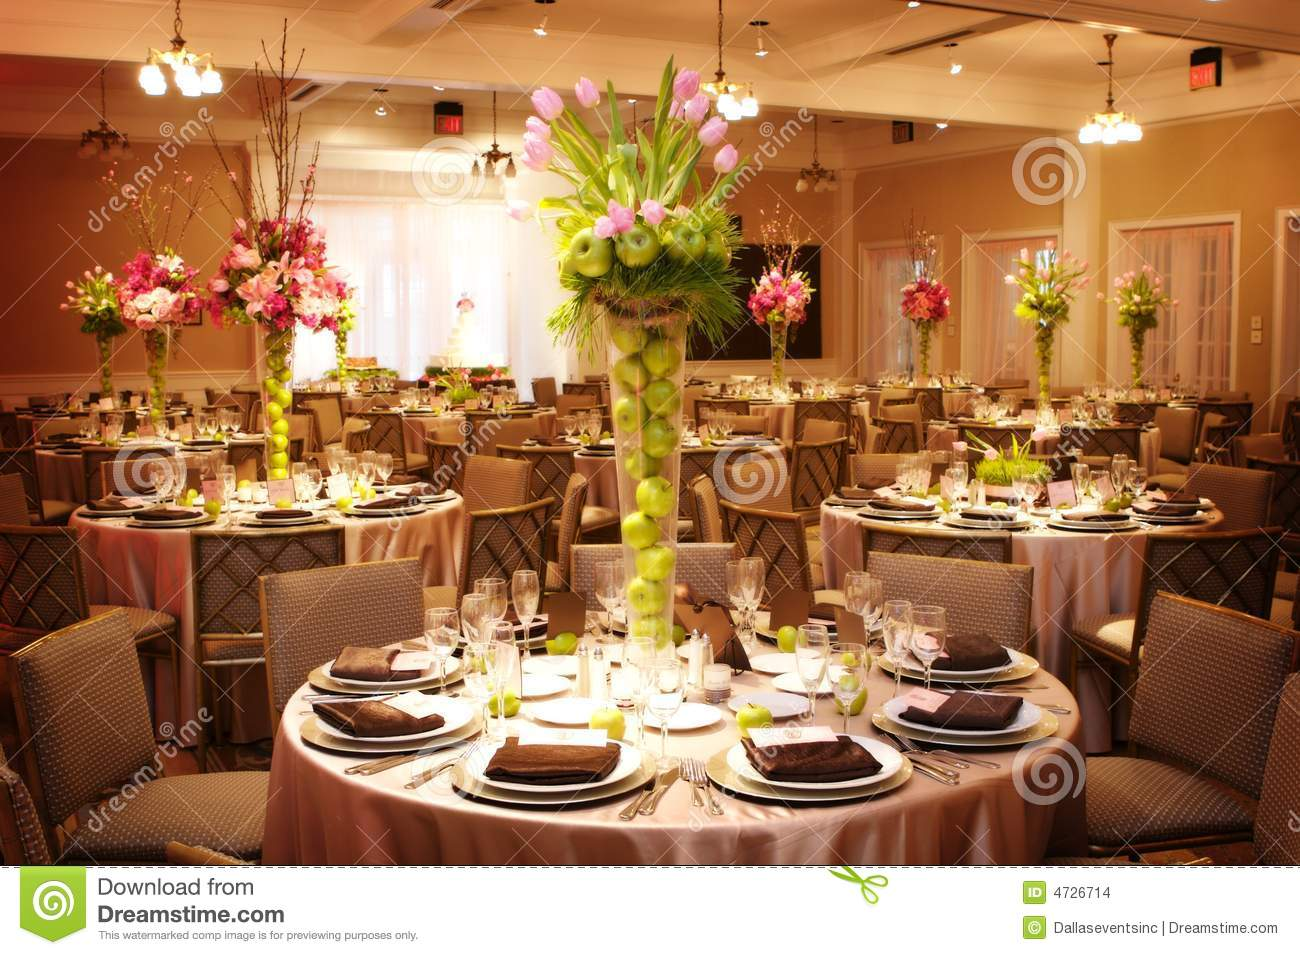 Dinner table setting ideas romantic dinner table setting ideas - Table Setting At A Luxury Wedding Reception Stock Images